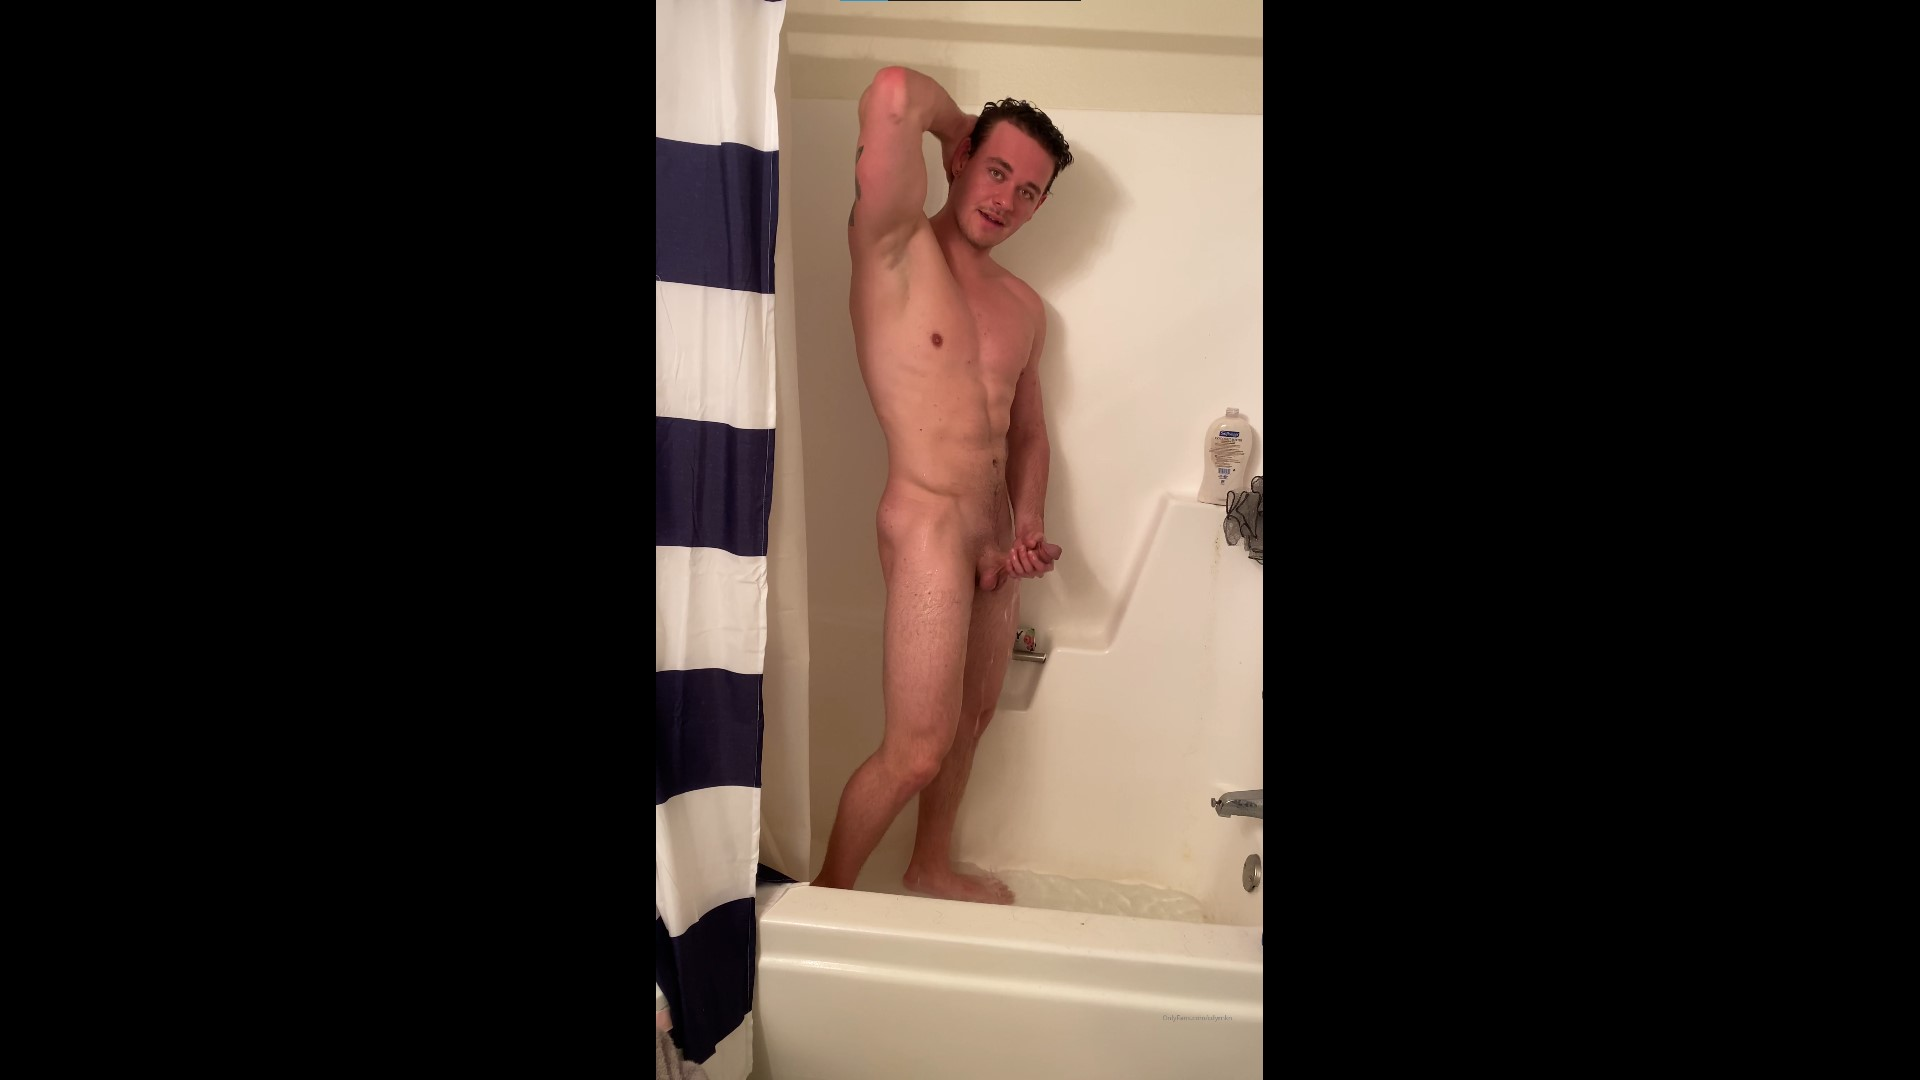 Playing with my dick in the shower - CdyRnkn